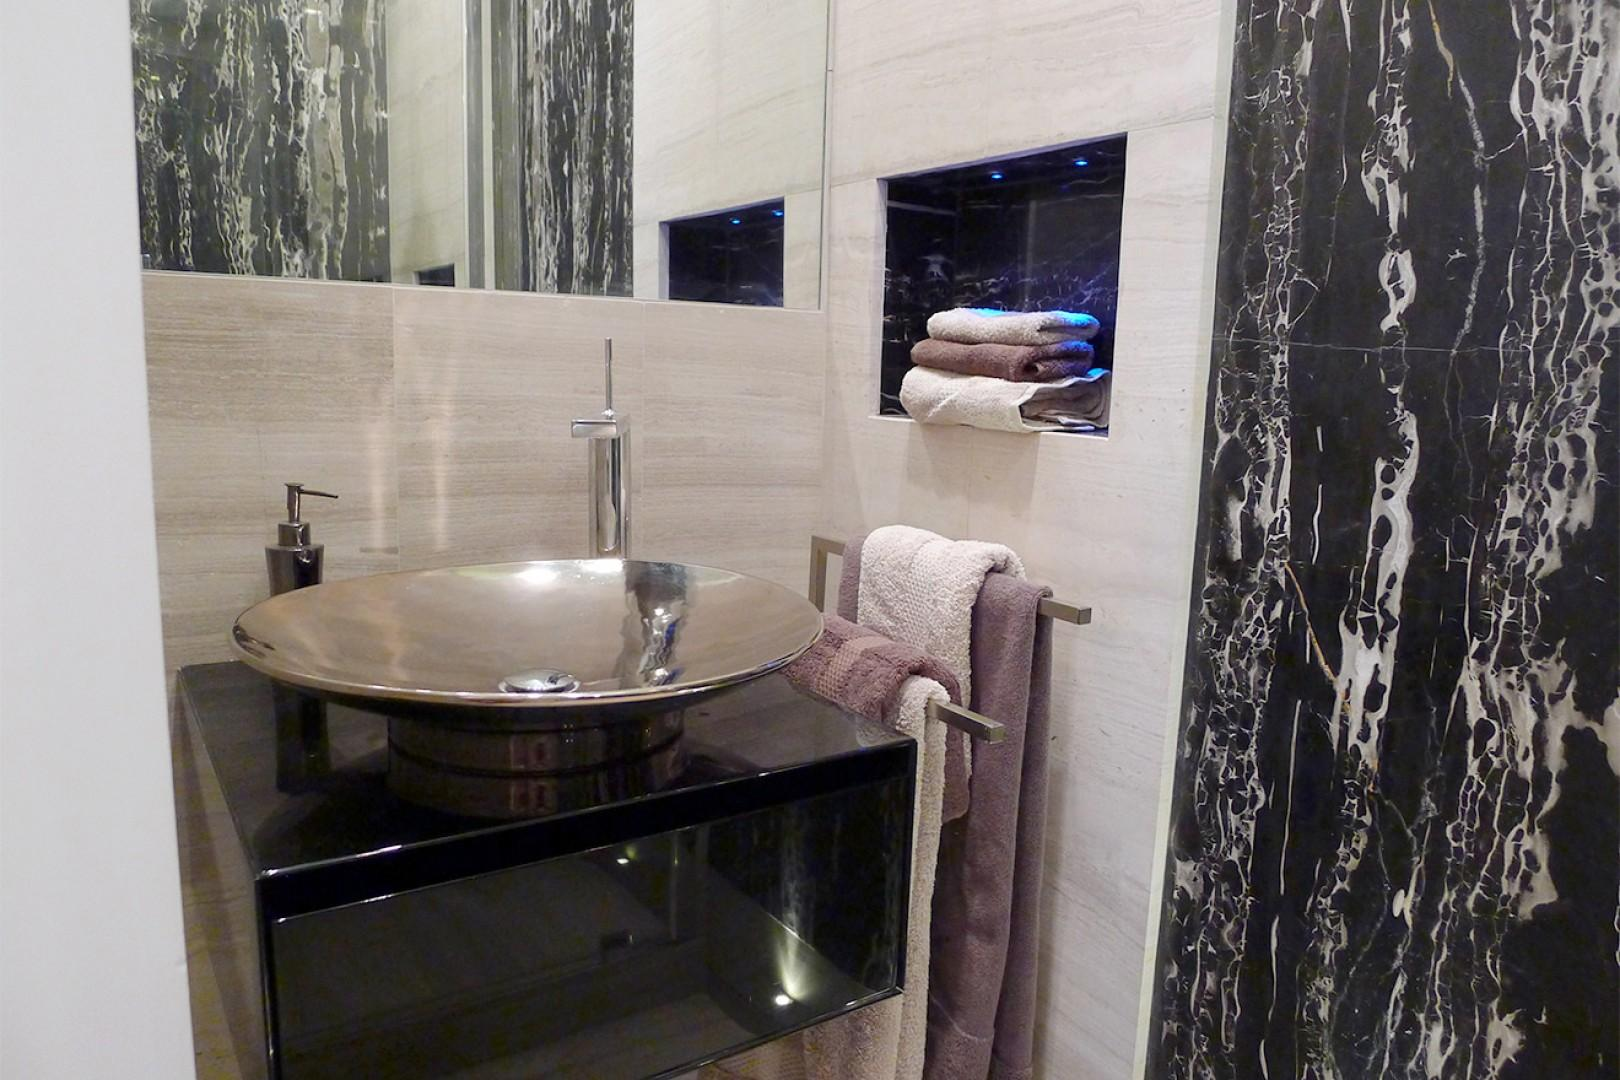 Enjoy the high-end finishes and a rainfall showerhead in bathroom 2.